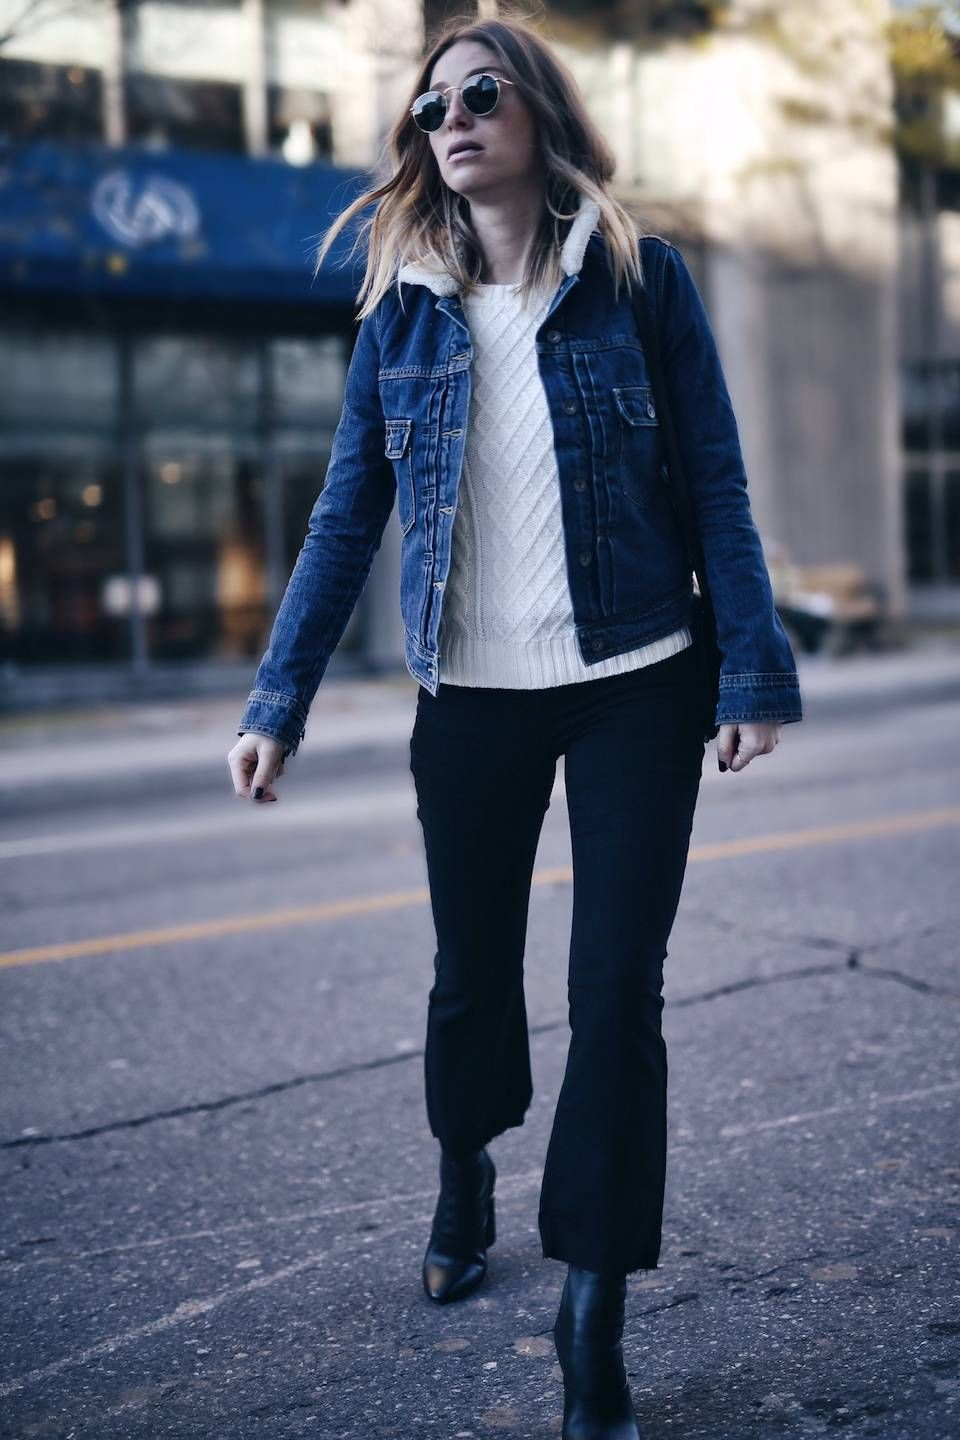 78f79cbe929a3 HOW TO WEAR A SHEARLING DENIM JACKET